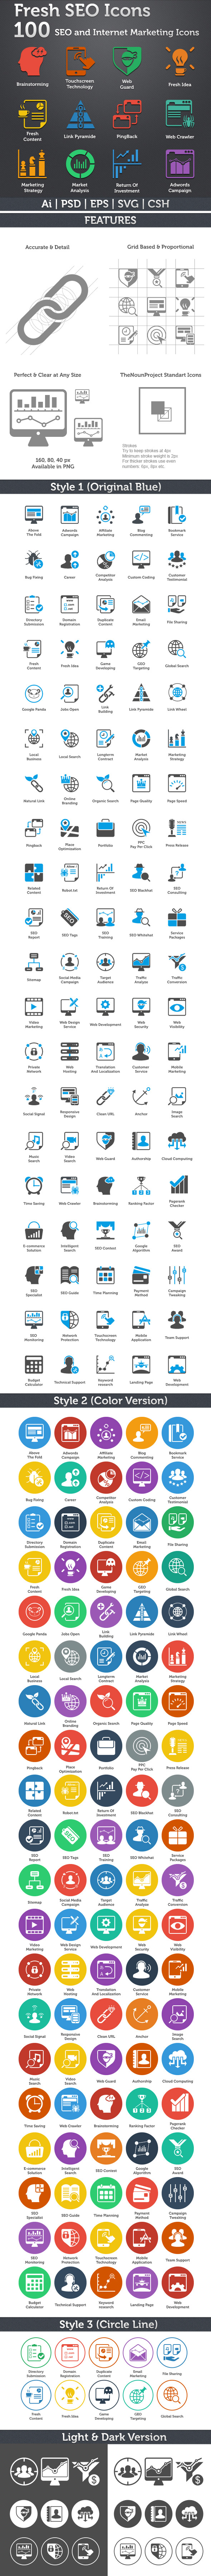 100 Fresh SEO Icons SEO and Internet Marketing Icons icons